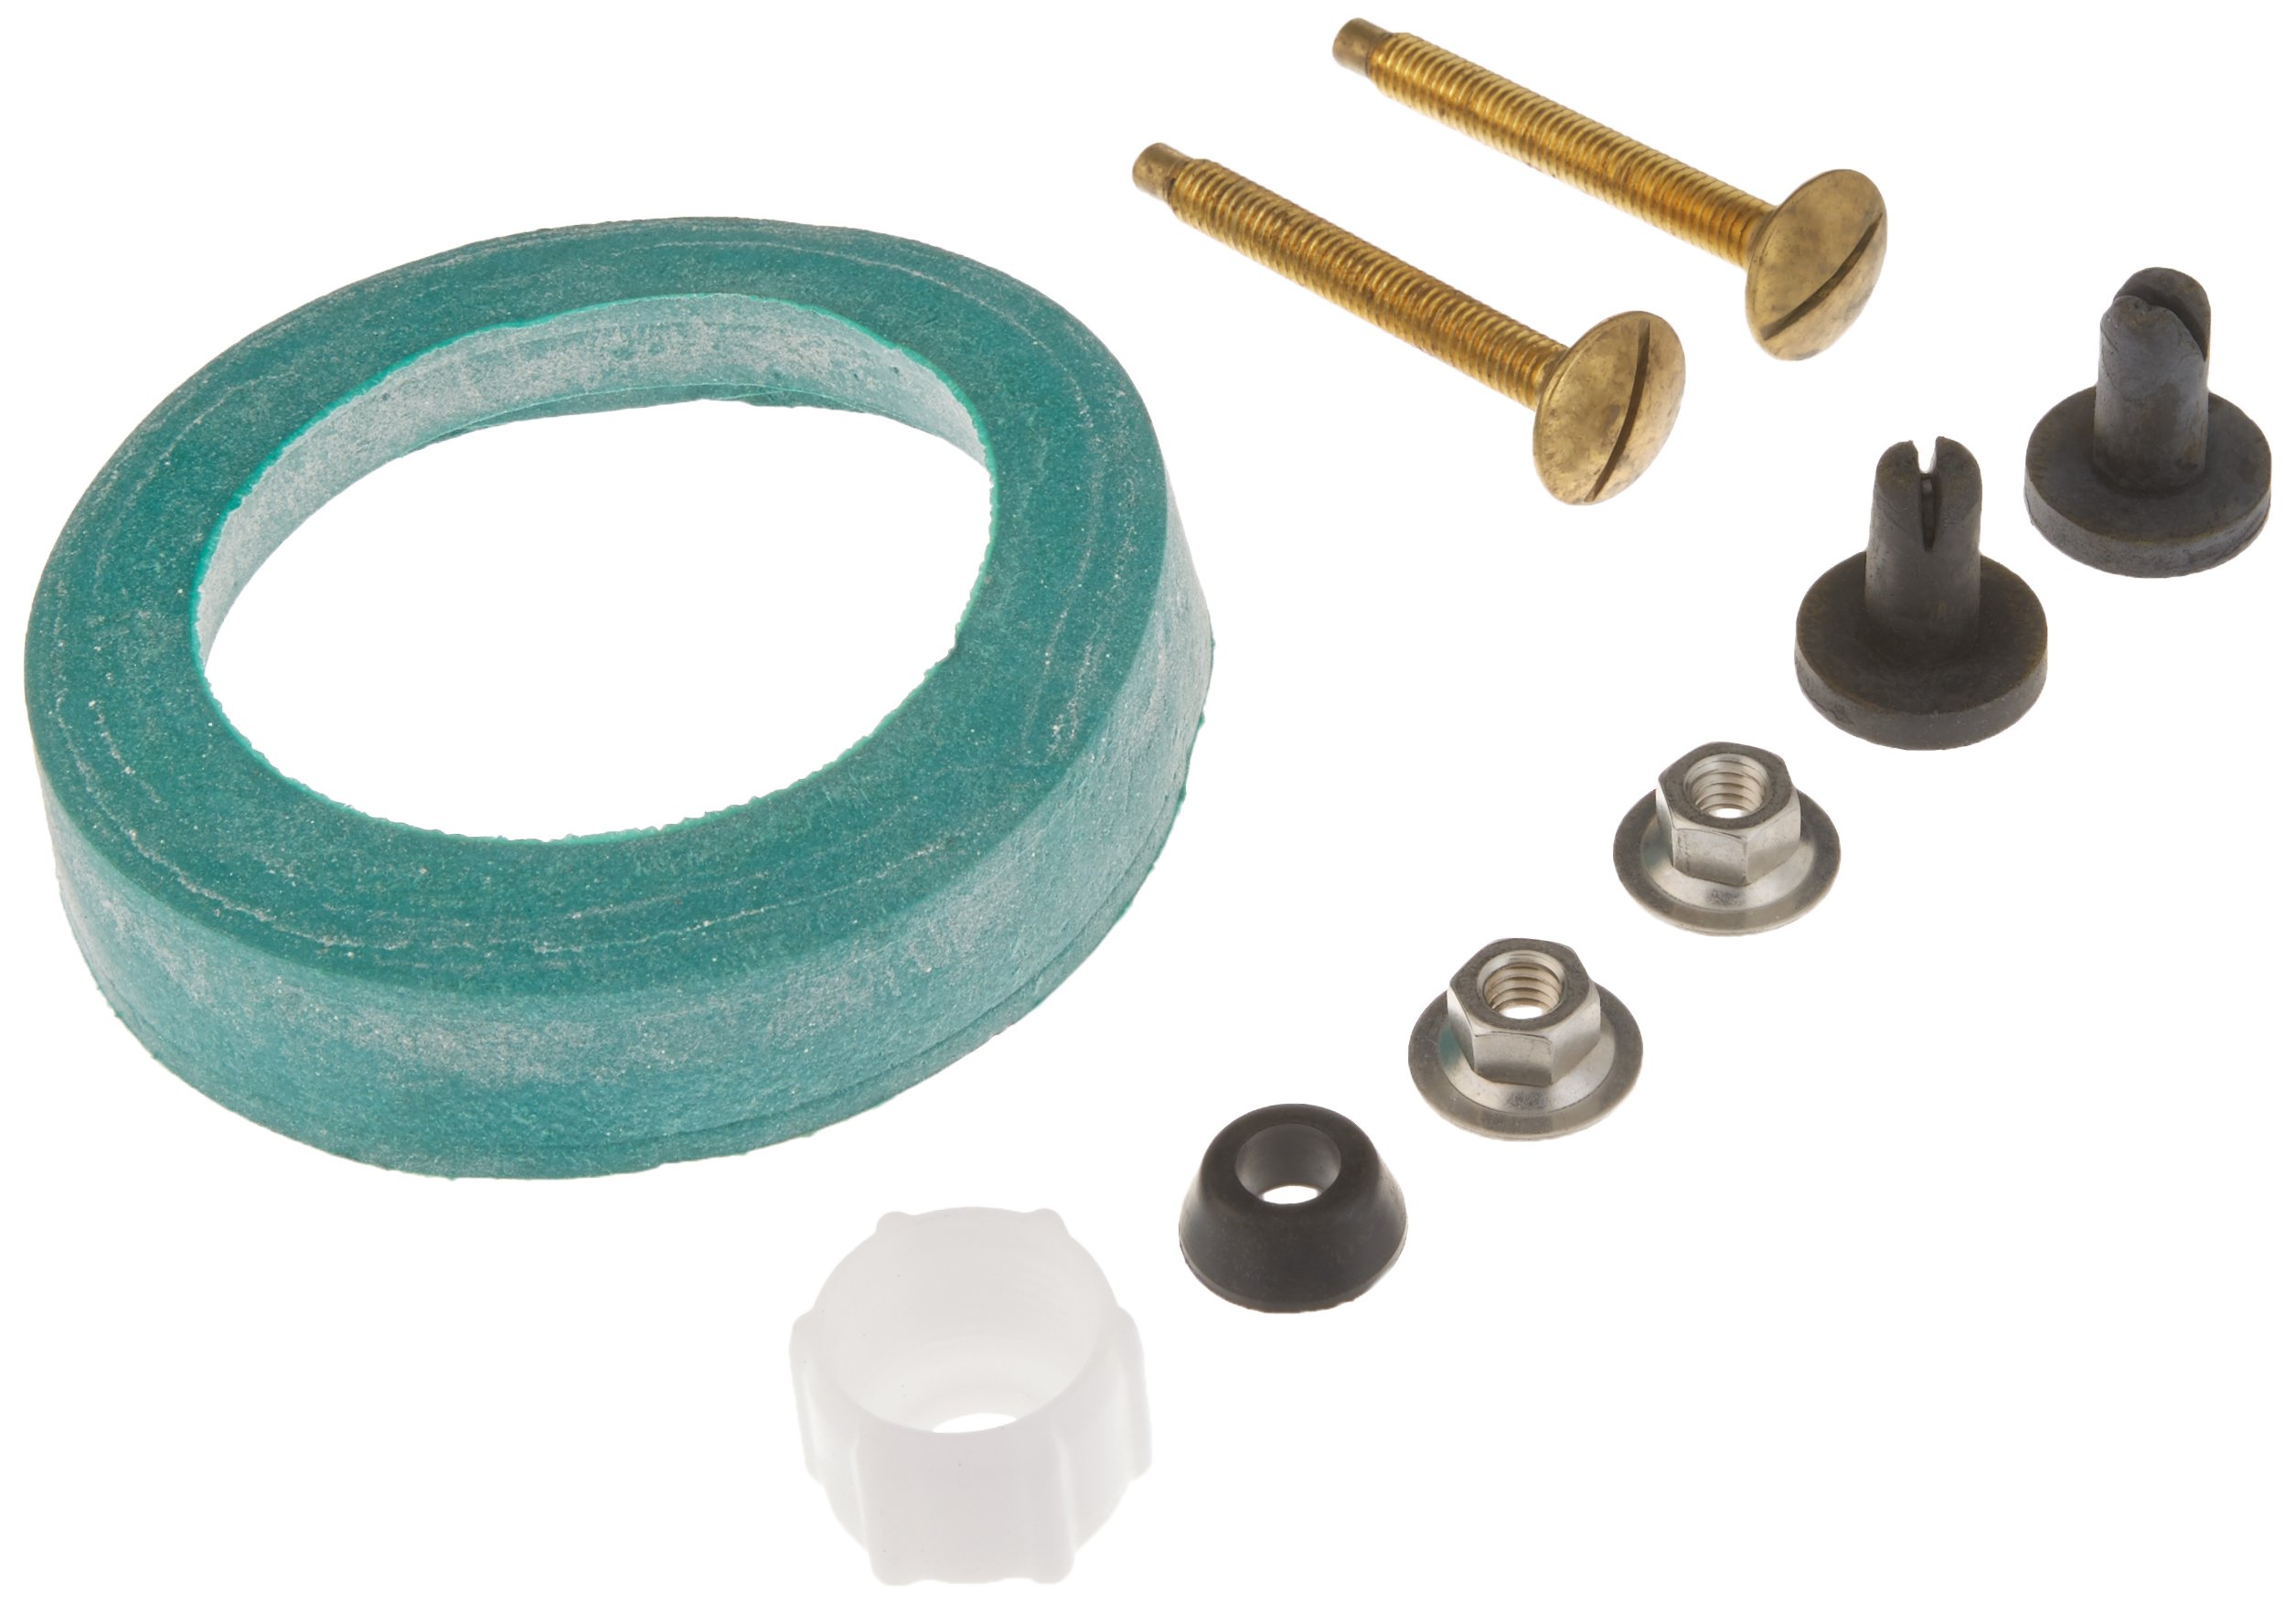 American Standard 738756-0070A Tank to Bowl Coupling Kit